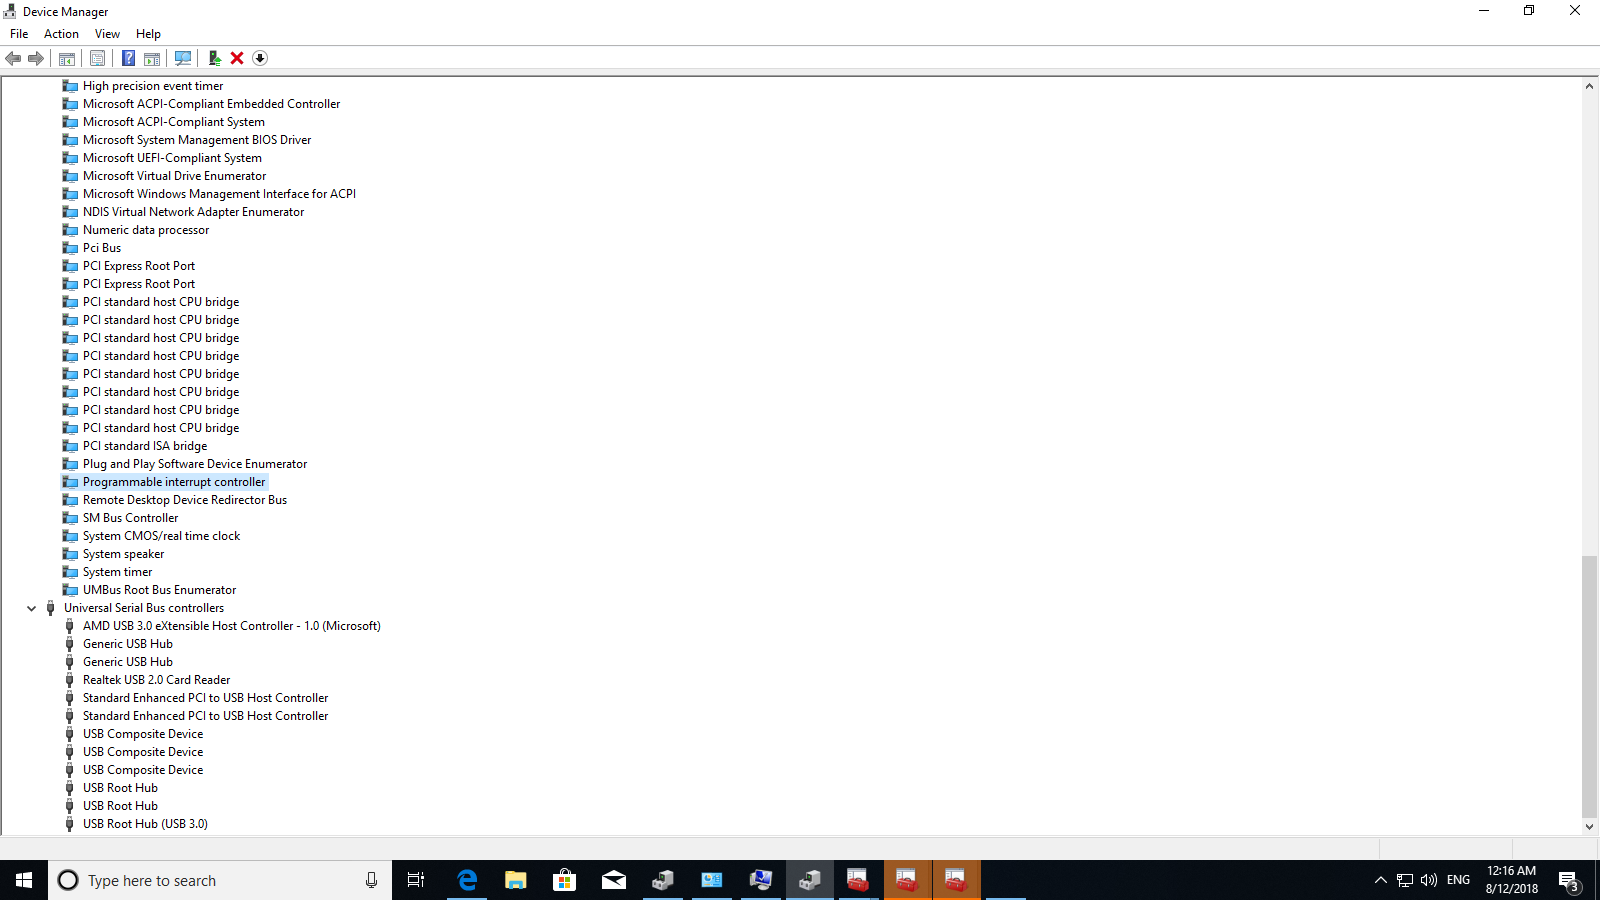 Someone has created a network on my personal PC without my permission. 672b61ba-dfe1-47c3-a8b0-88e1df9b5246?upload=true.png